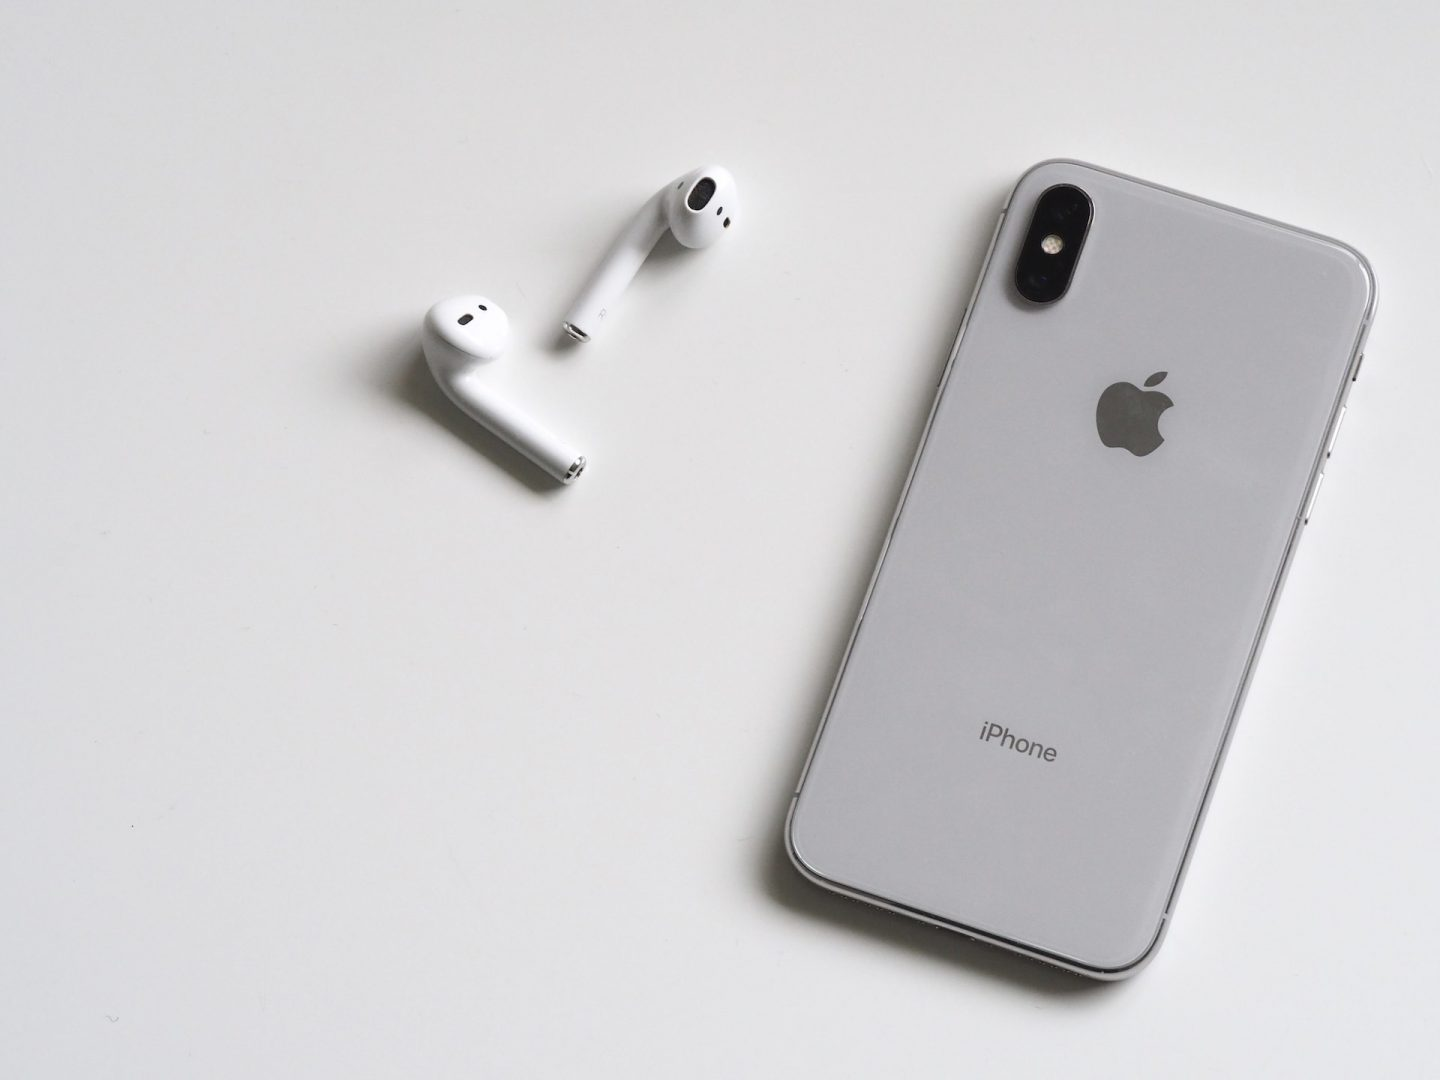 Apple iPhone X white with AirPods